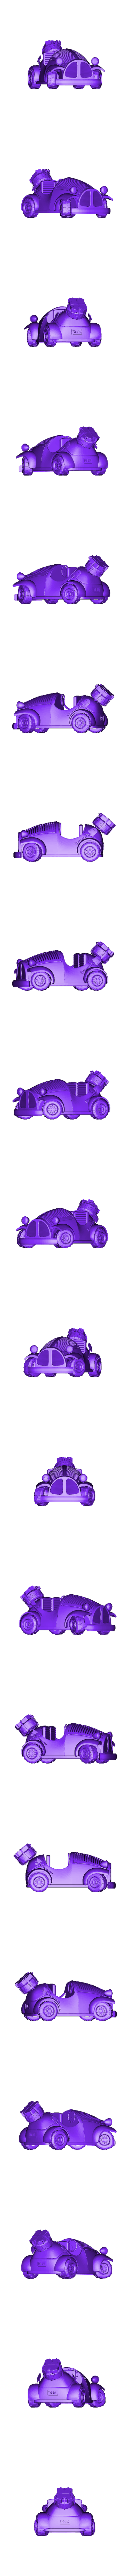 Vehicle.OBJ Download free OBJ file Dragon Ball Yuma • 3D printable object, l3dmanstore